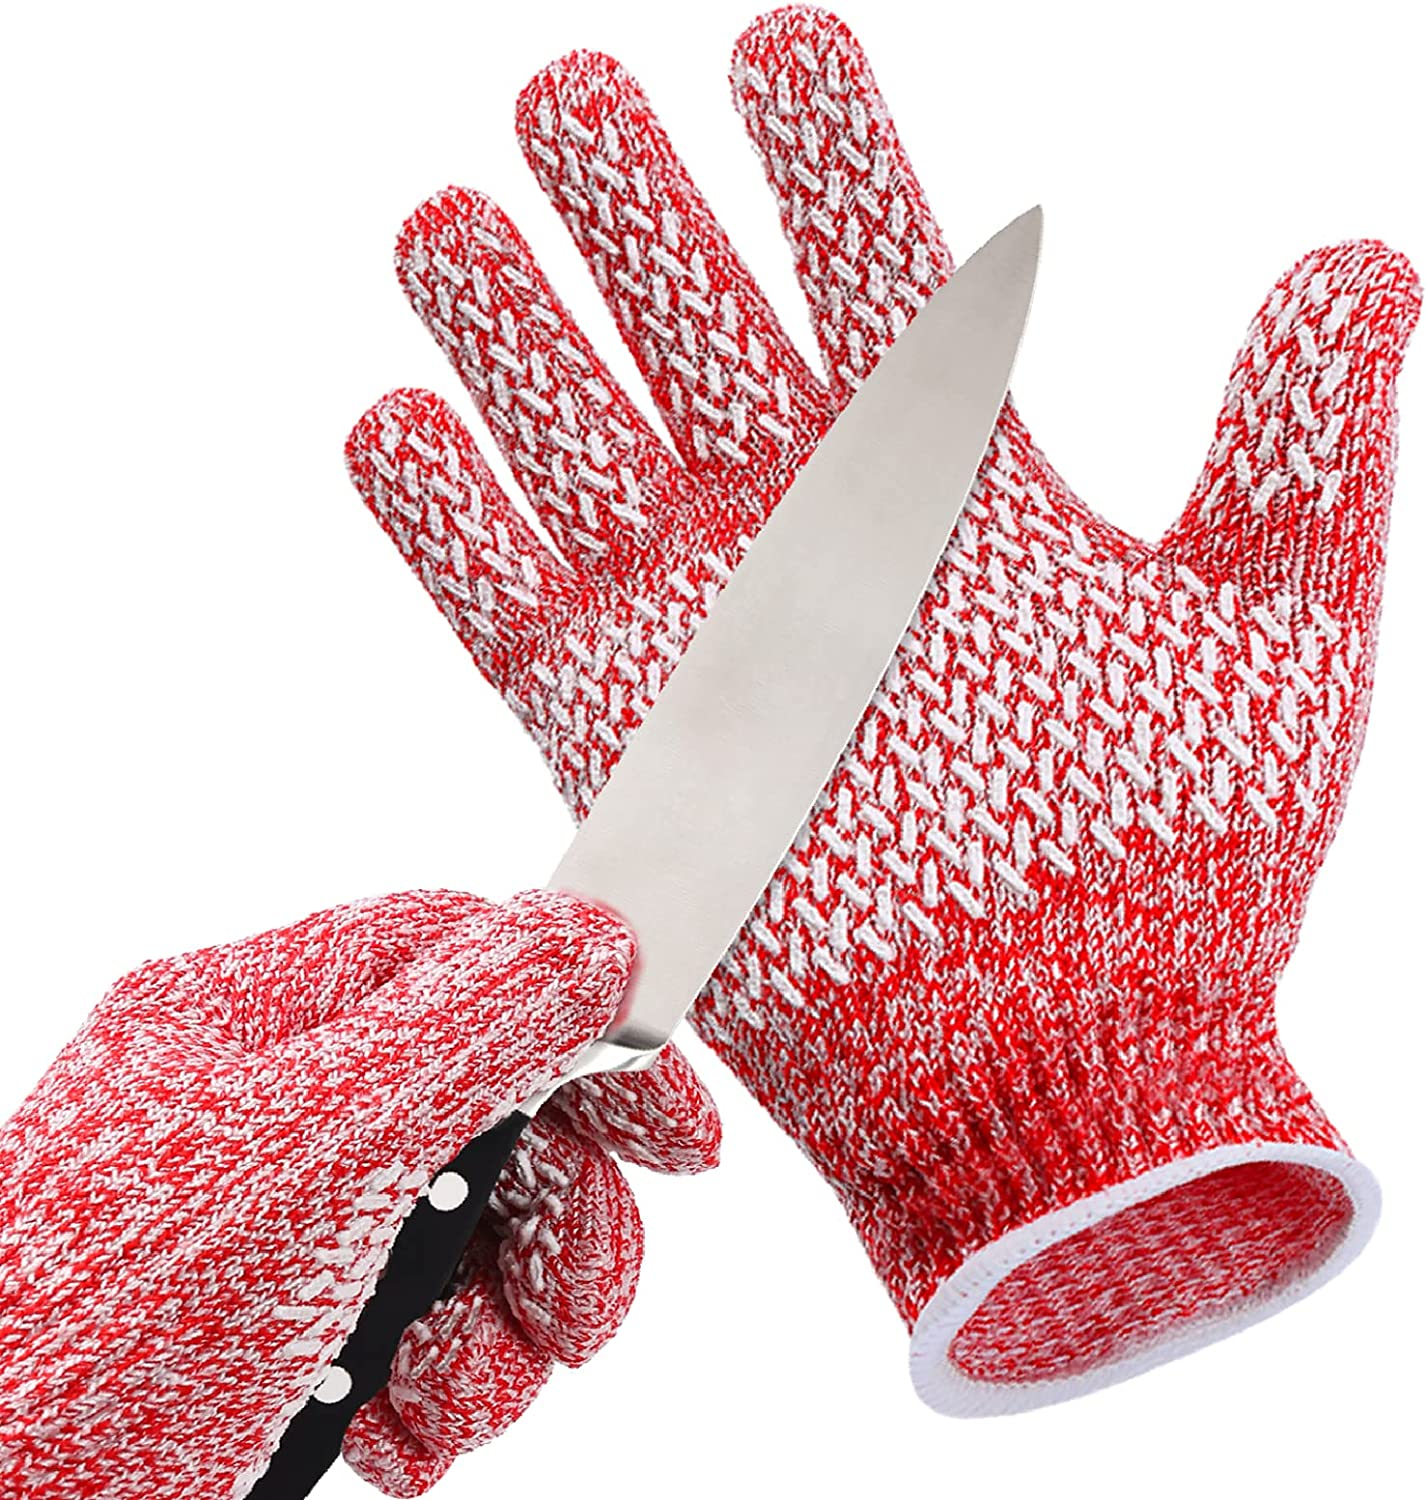 Kids Cut Resistant Gloves, Upgraded Non-slip Grips, Food Grade Safety Work Cutting Gloves for Kitchen, Woodworking